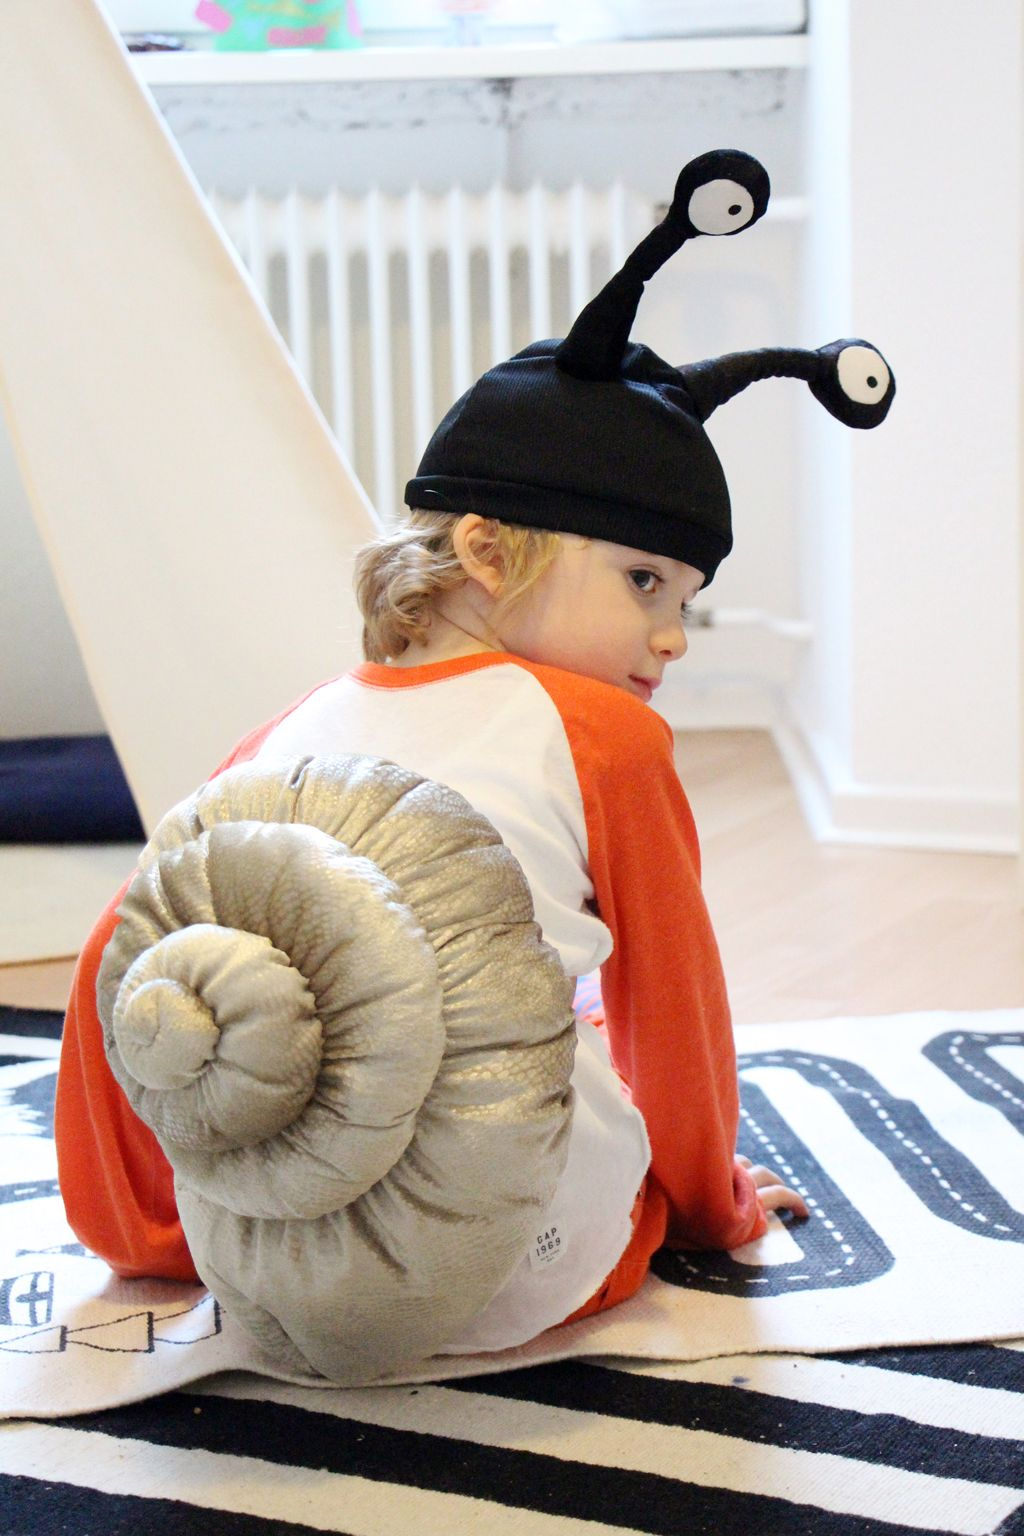 ikea hack diy snail costume costumes more pinterest kost m diy kost m und kost m ideen. Black Bedroom Furniture Sets. Home Design Ideas